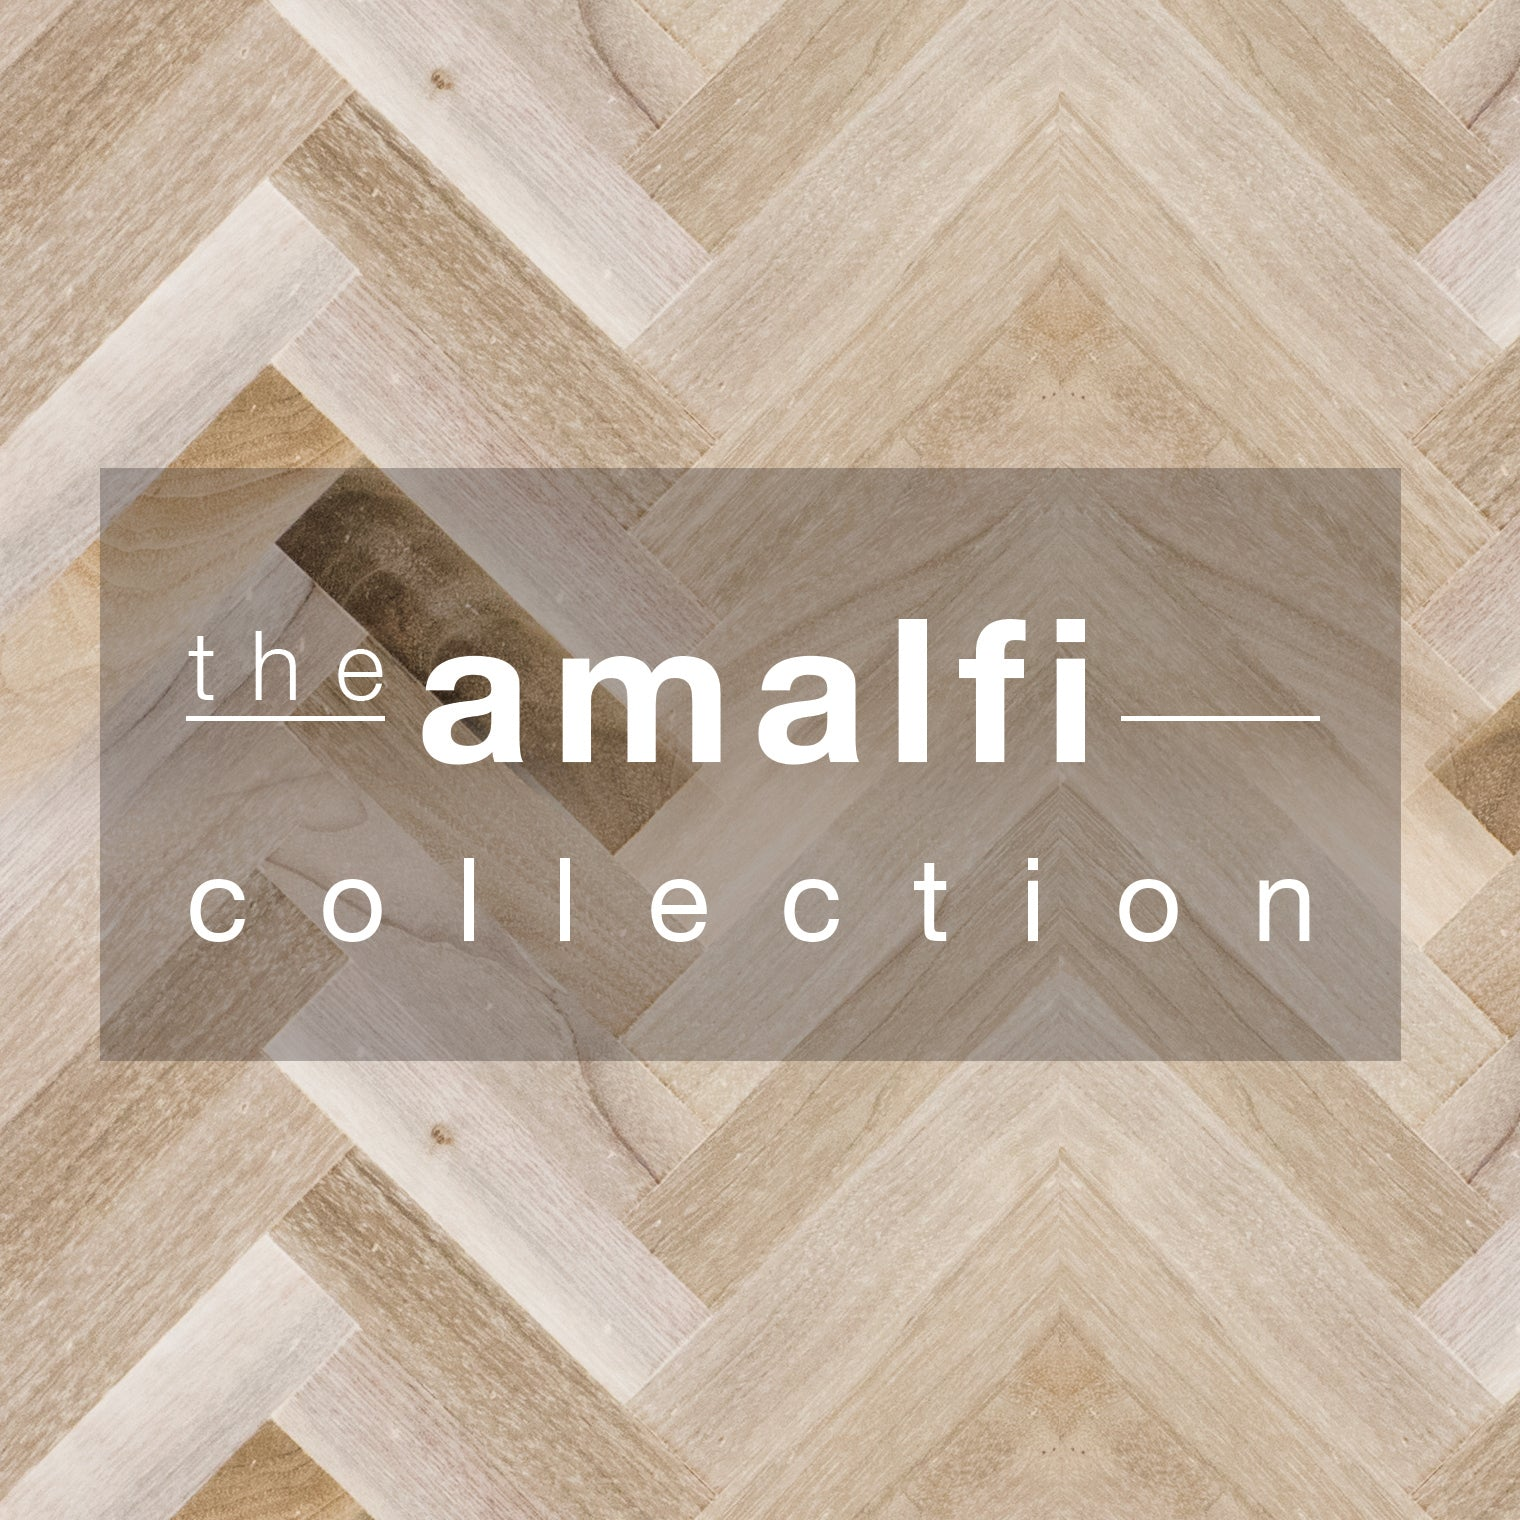 Chevron array of light beige wood strips, white letters in shaded center rectangle spelling 'the Amalfi Collection'